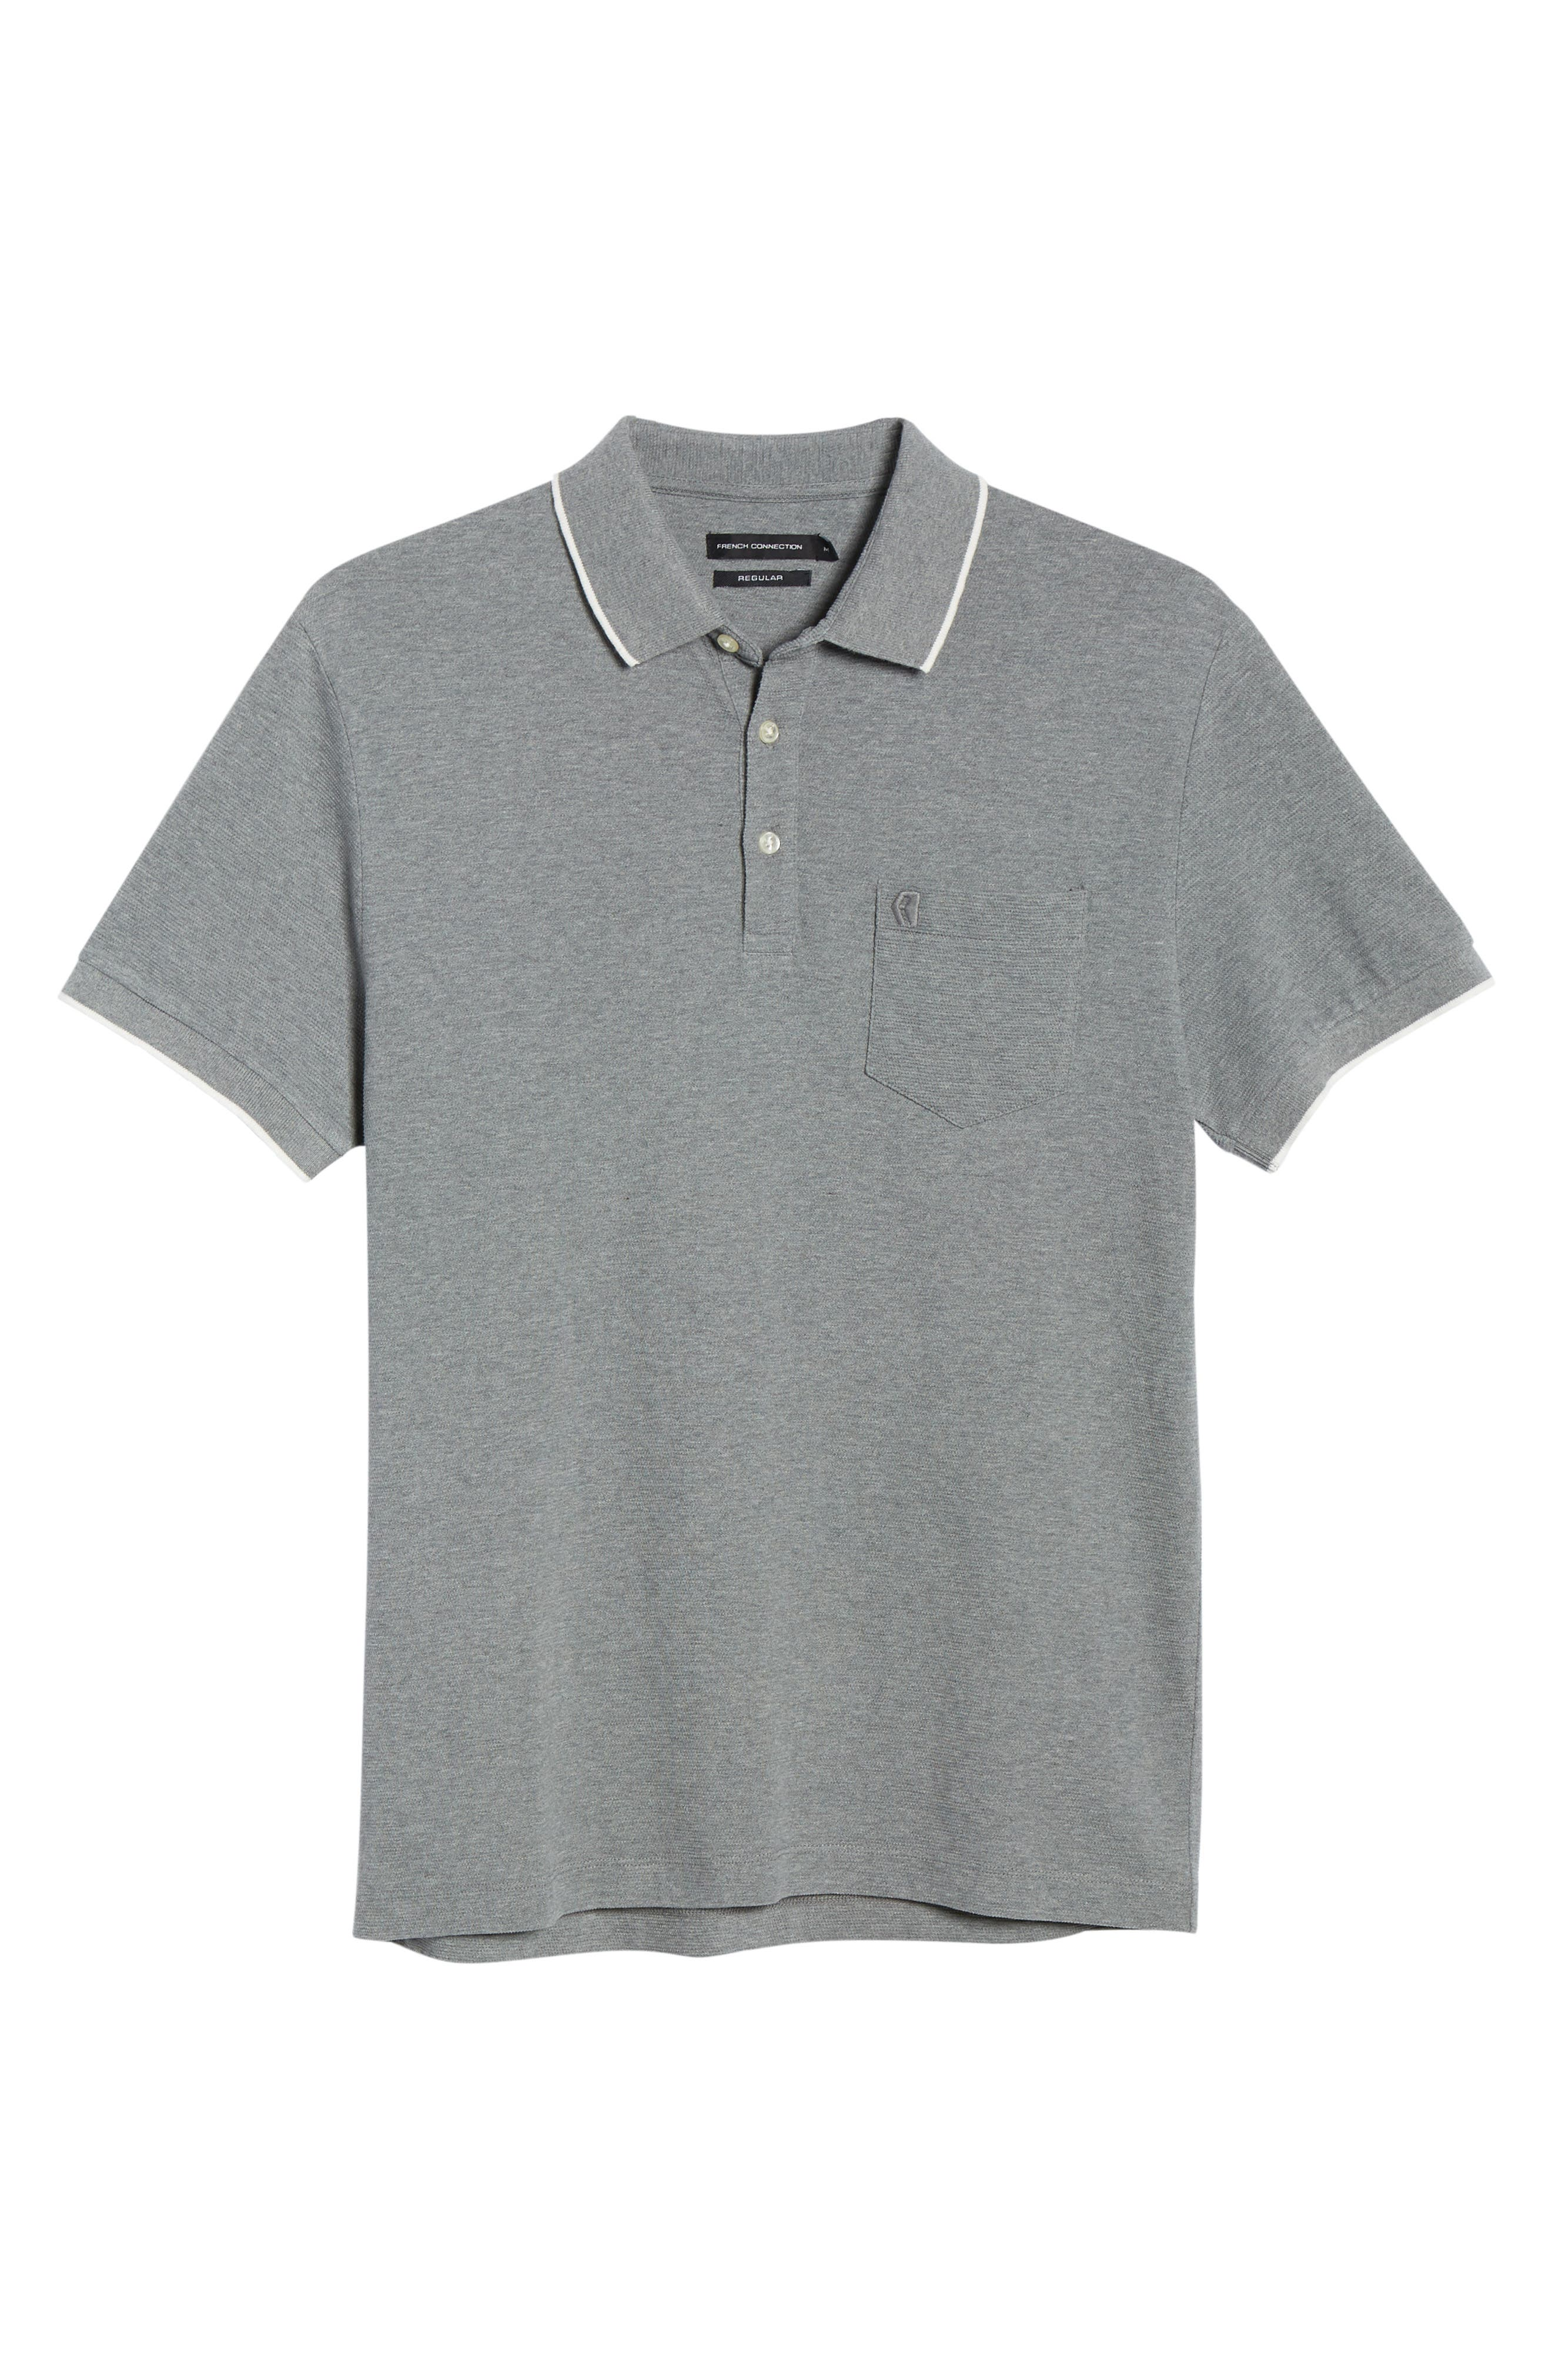 FRENCH CONNECTION, Parched Piqué Polo, Alternate thumbnail 6, color, MID GREY MEL WHITE